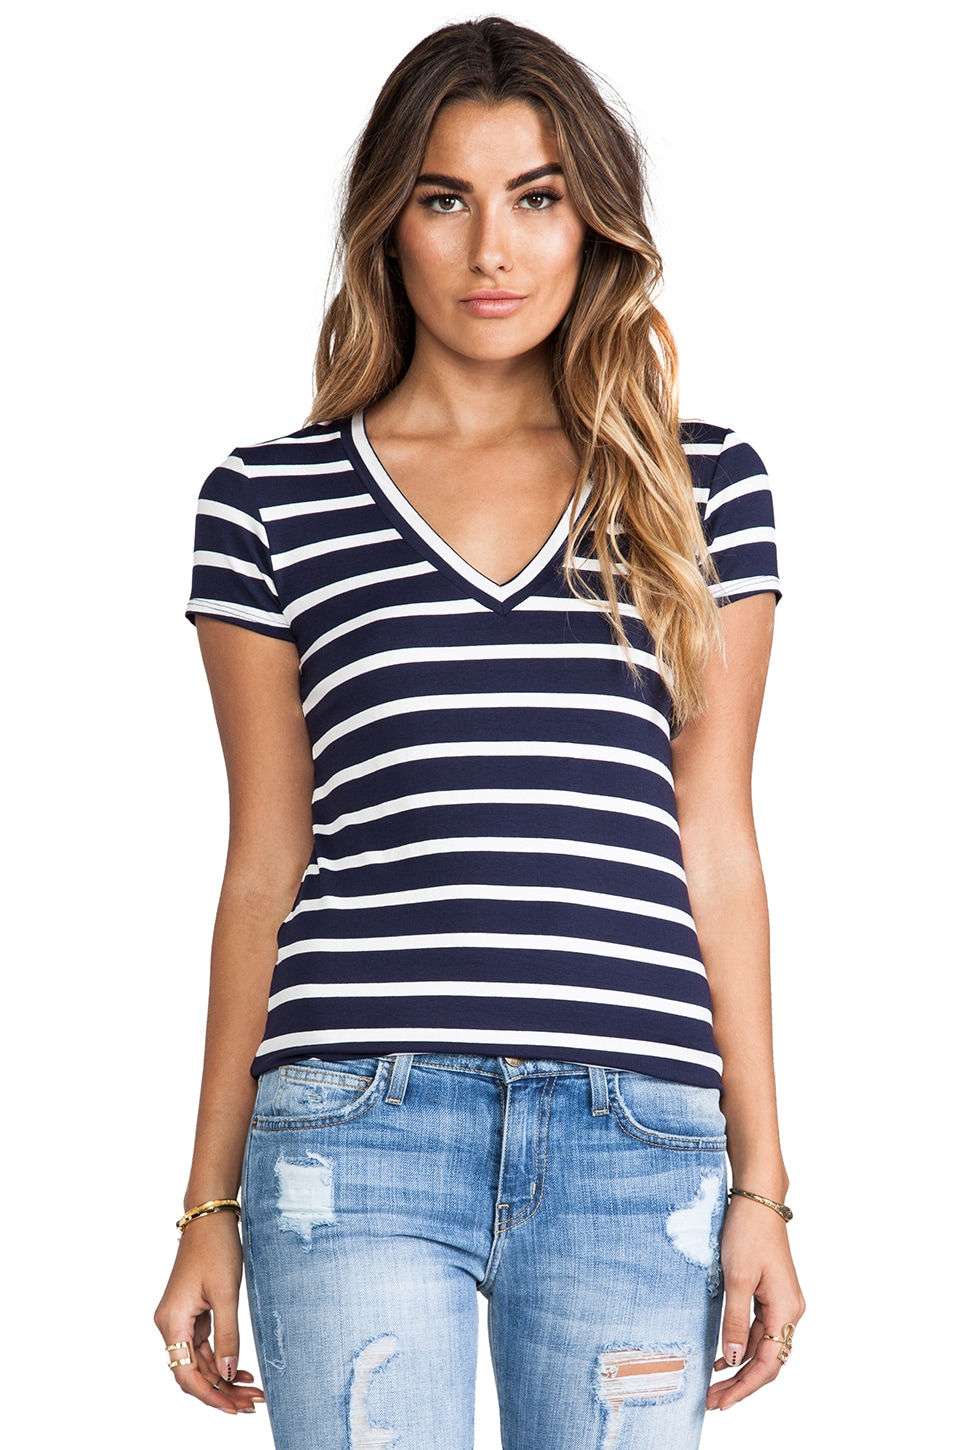 LA Made Classic Stripe V Neck Tee in Navy & White